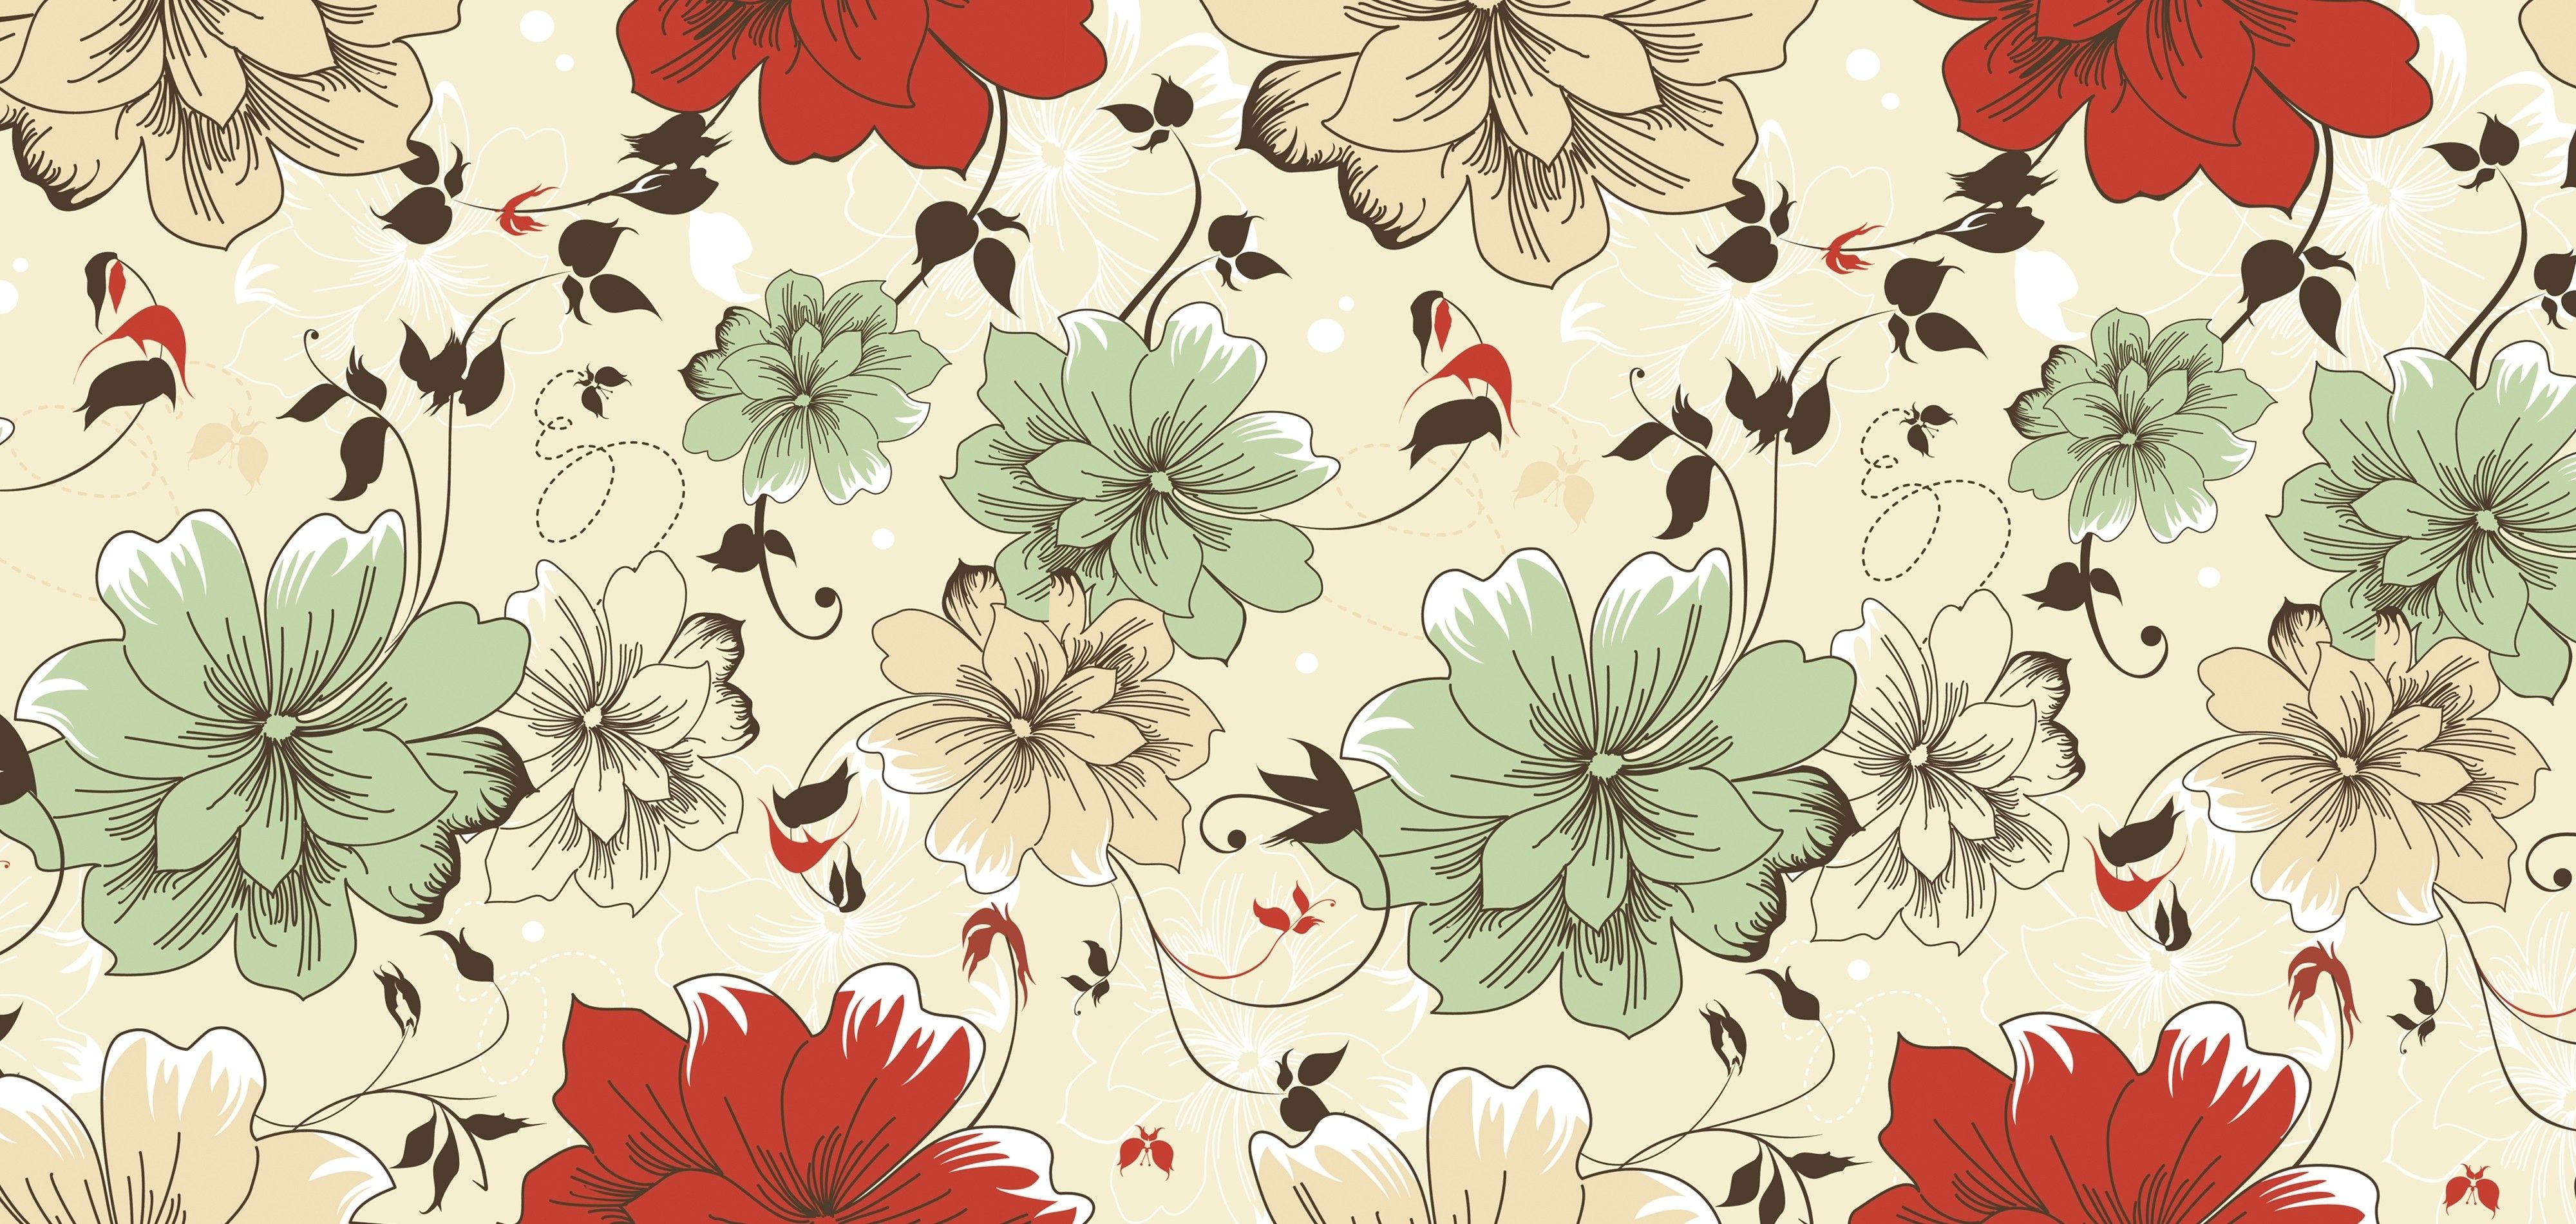 floral retro pattern desktop wallpaper tatts pinterest floral pattern wallpaper pattern wallpaper and hd wallpaper